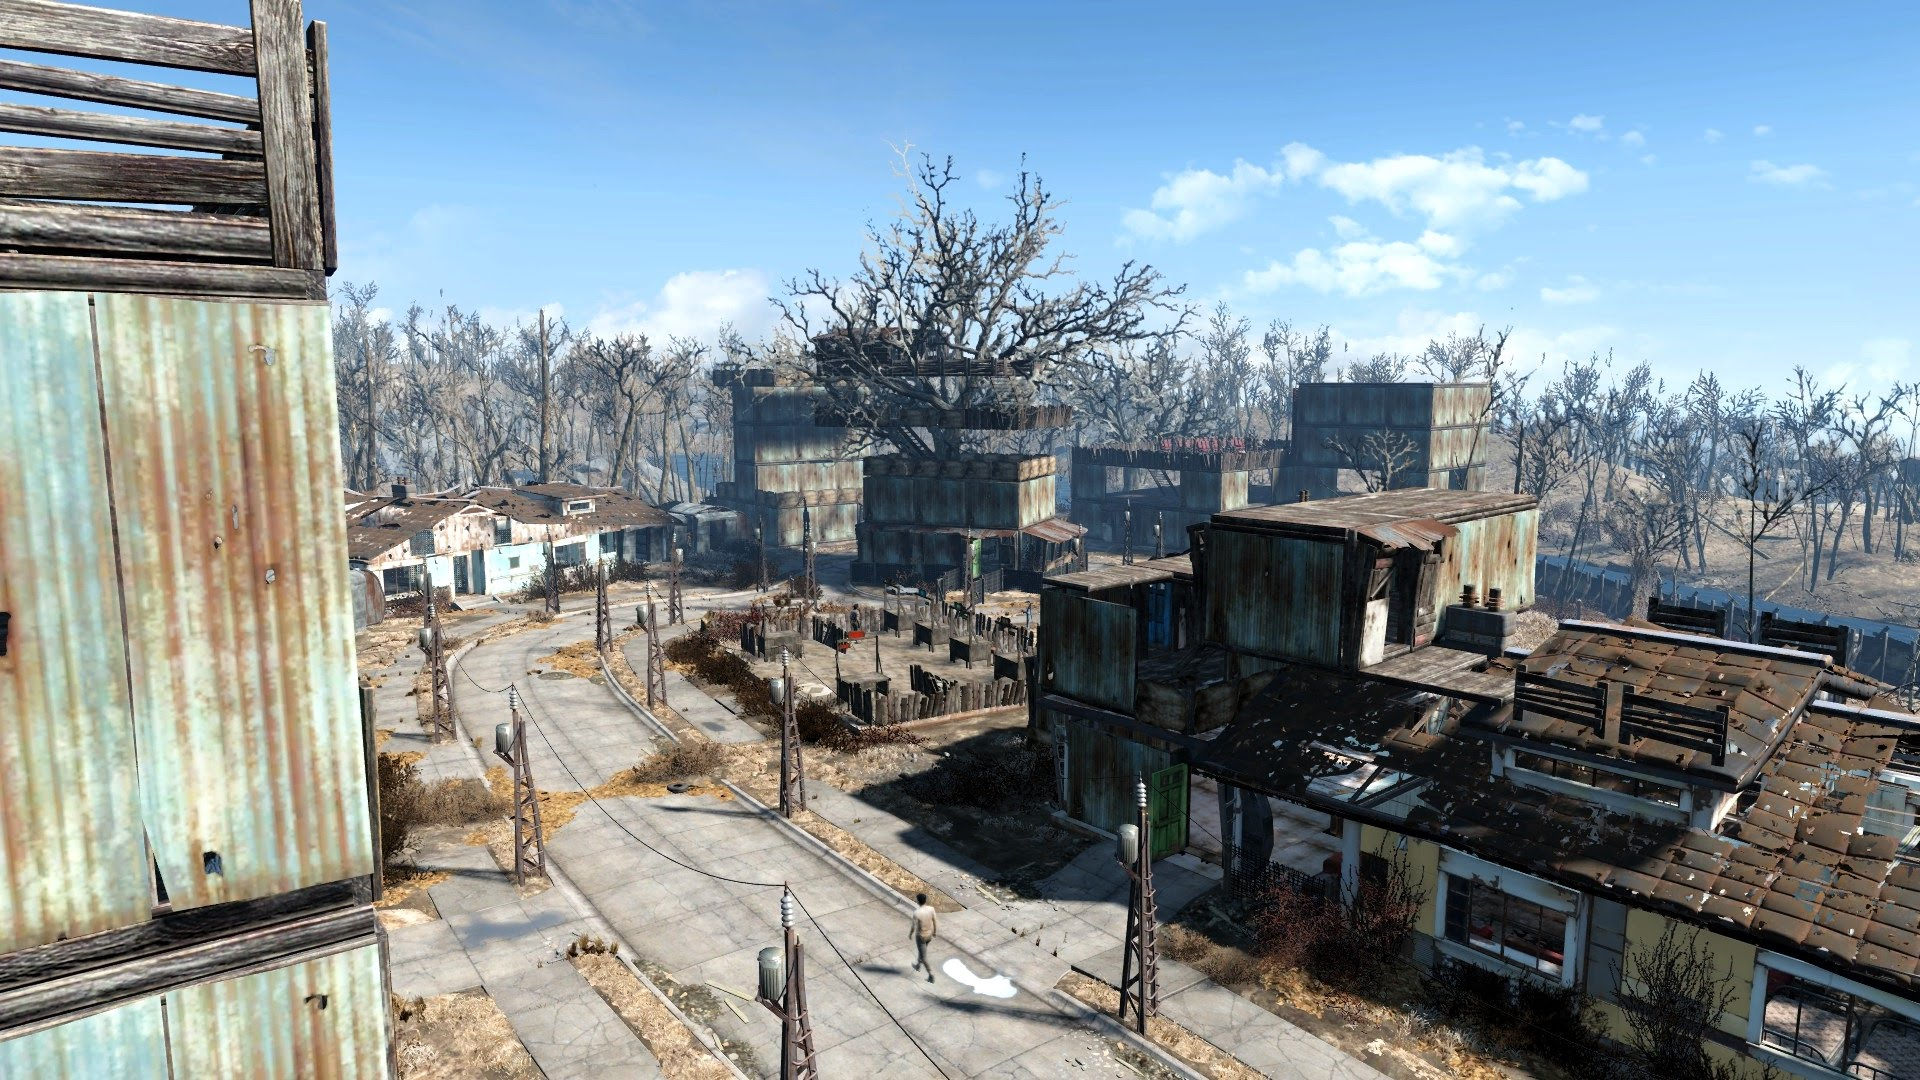 How To Build Cool Things In Fallout